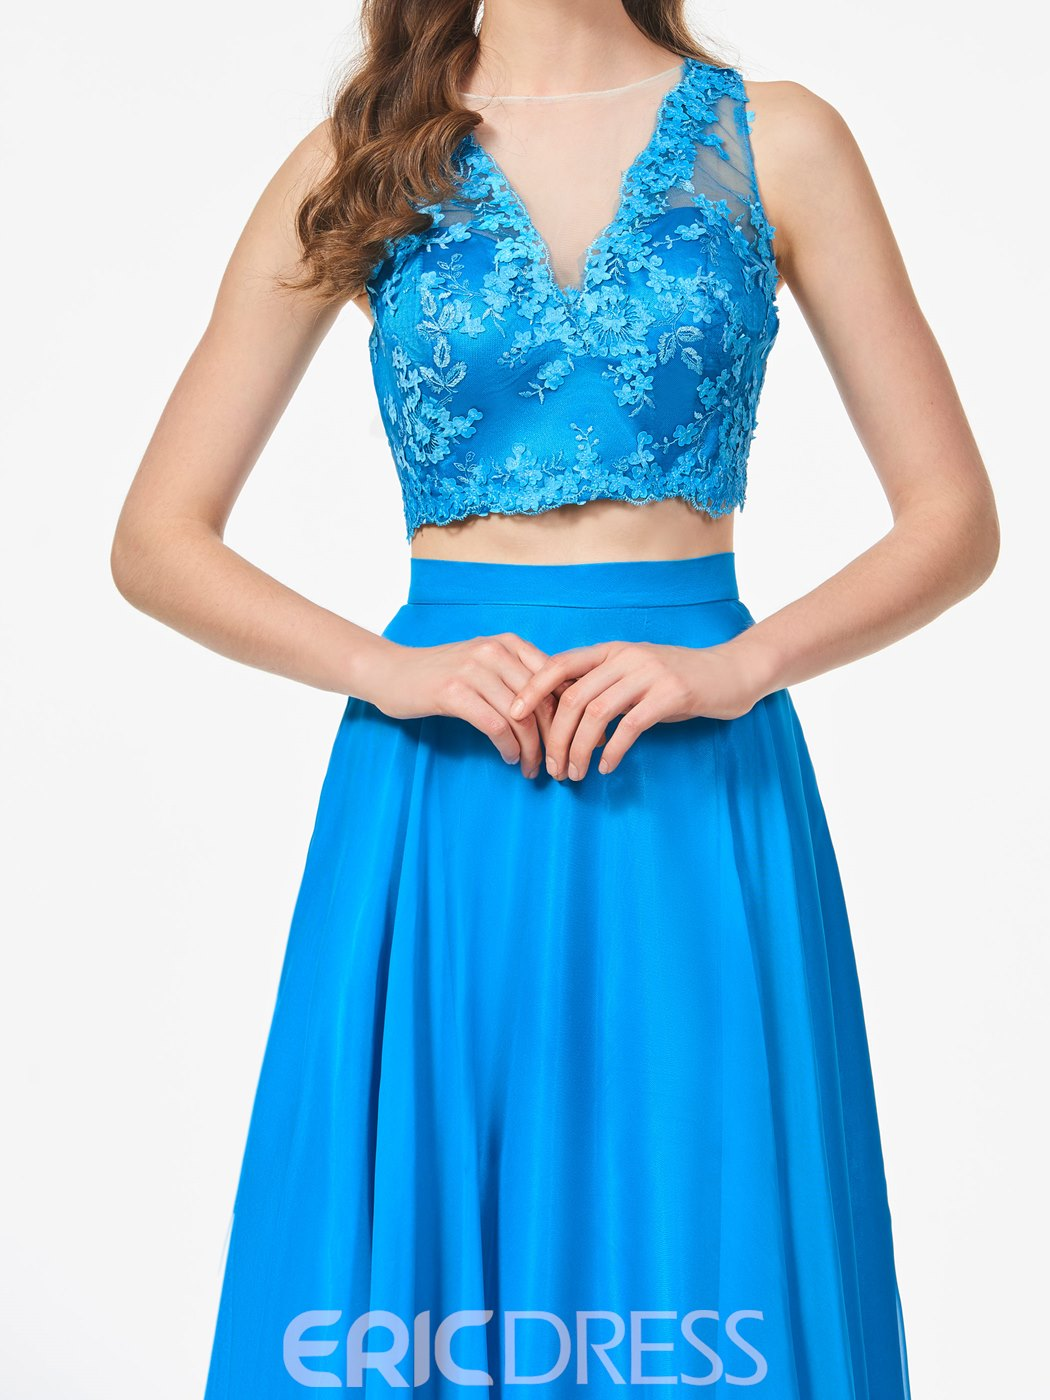 Ericdress A Line Sheer Neck Two Pieces Long Prom Dress